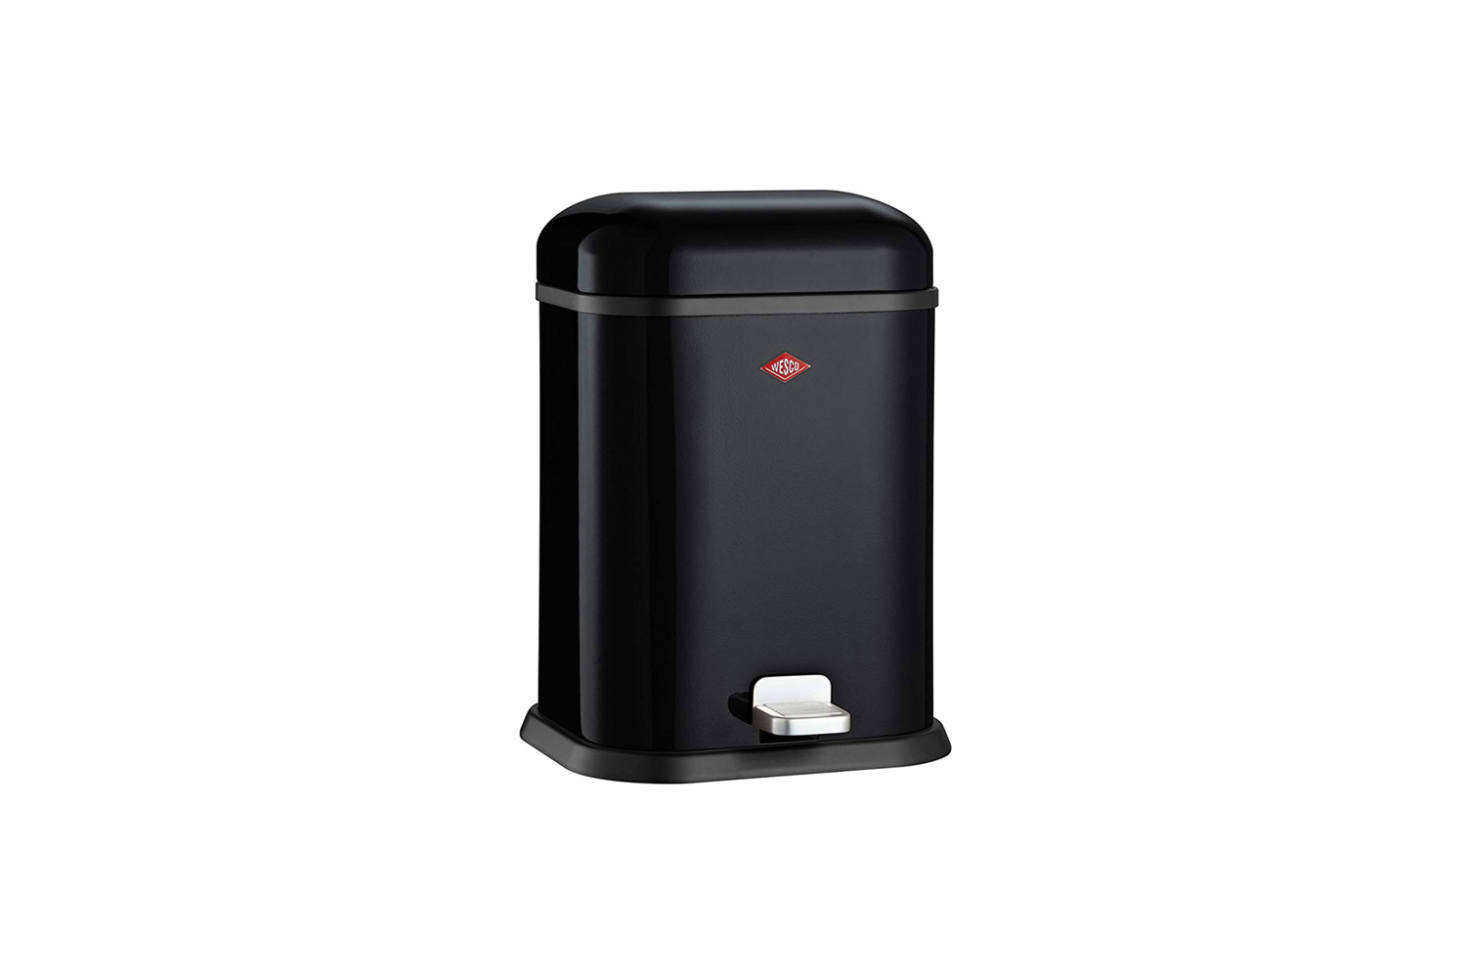 One of our favorite small trash bins is the Wesco Single Boy German-Designed Step Trash Can that comes in six different powder coated colors; $src=